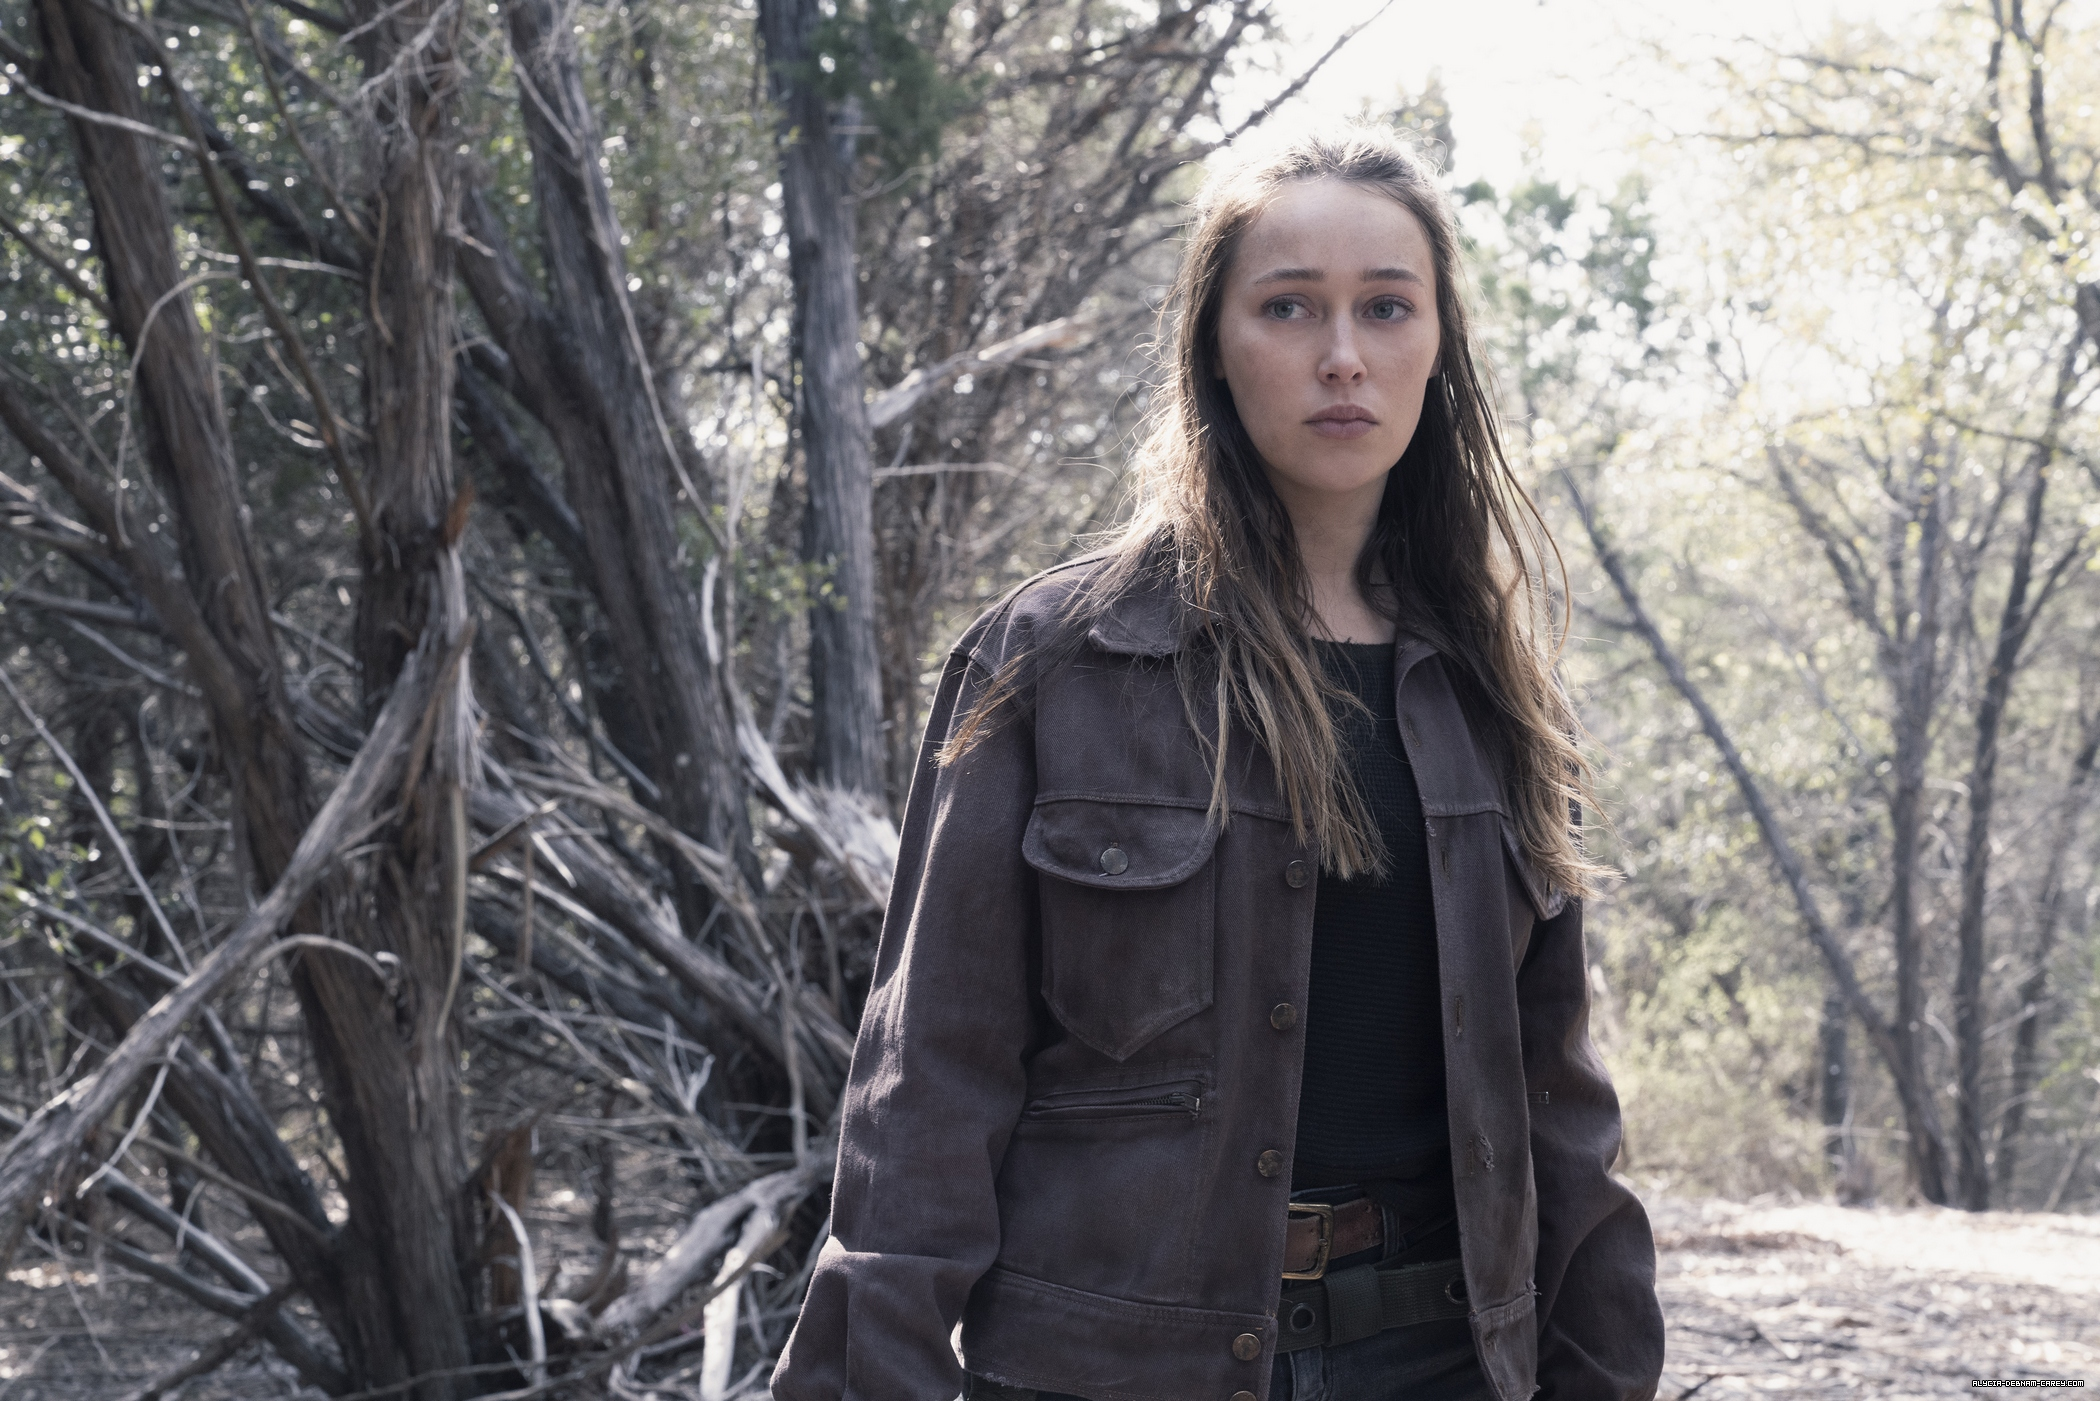 Photos: 'Fear the Walking Dead' Season 4 Screencaps & Stills